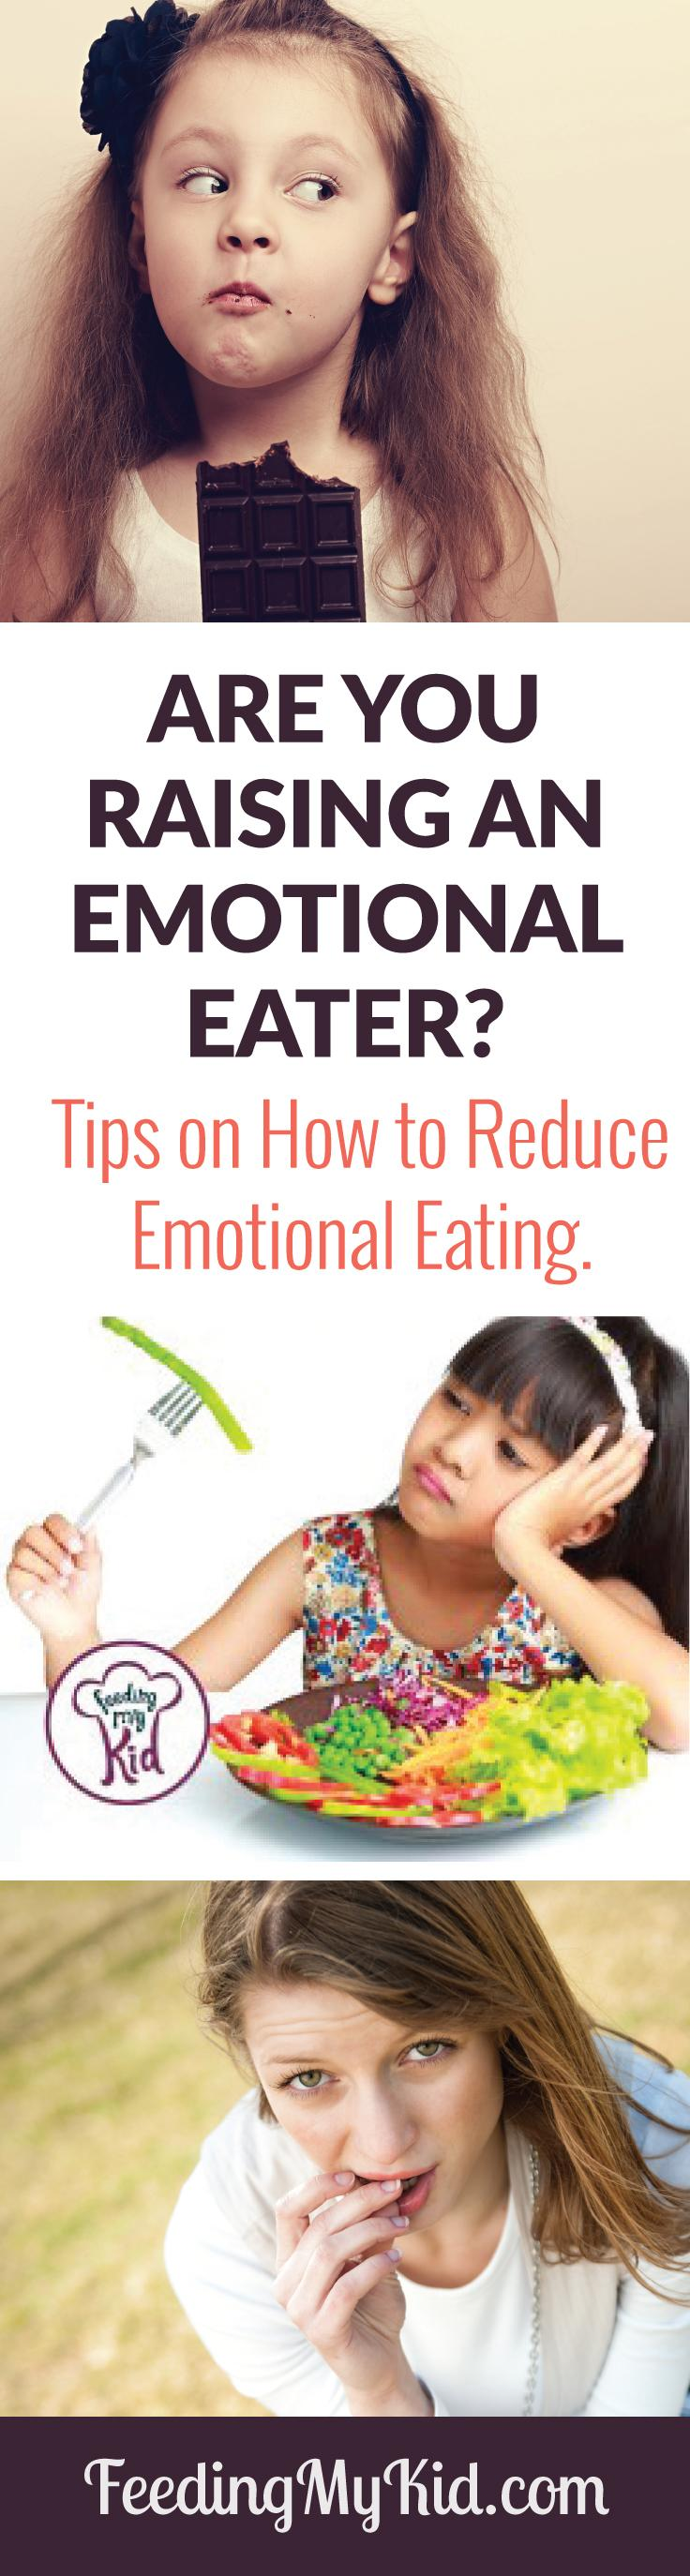 Are You Raising an Emotional Eater? Find out what to do instead. Get Tips to Reduce Your Chances of an Overweight Child.